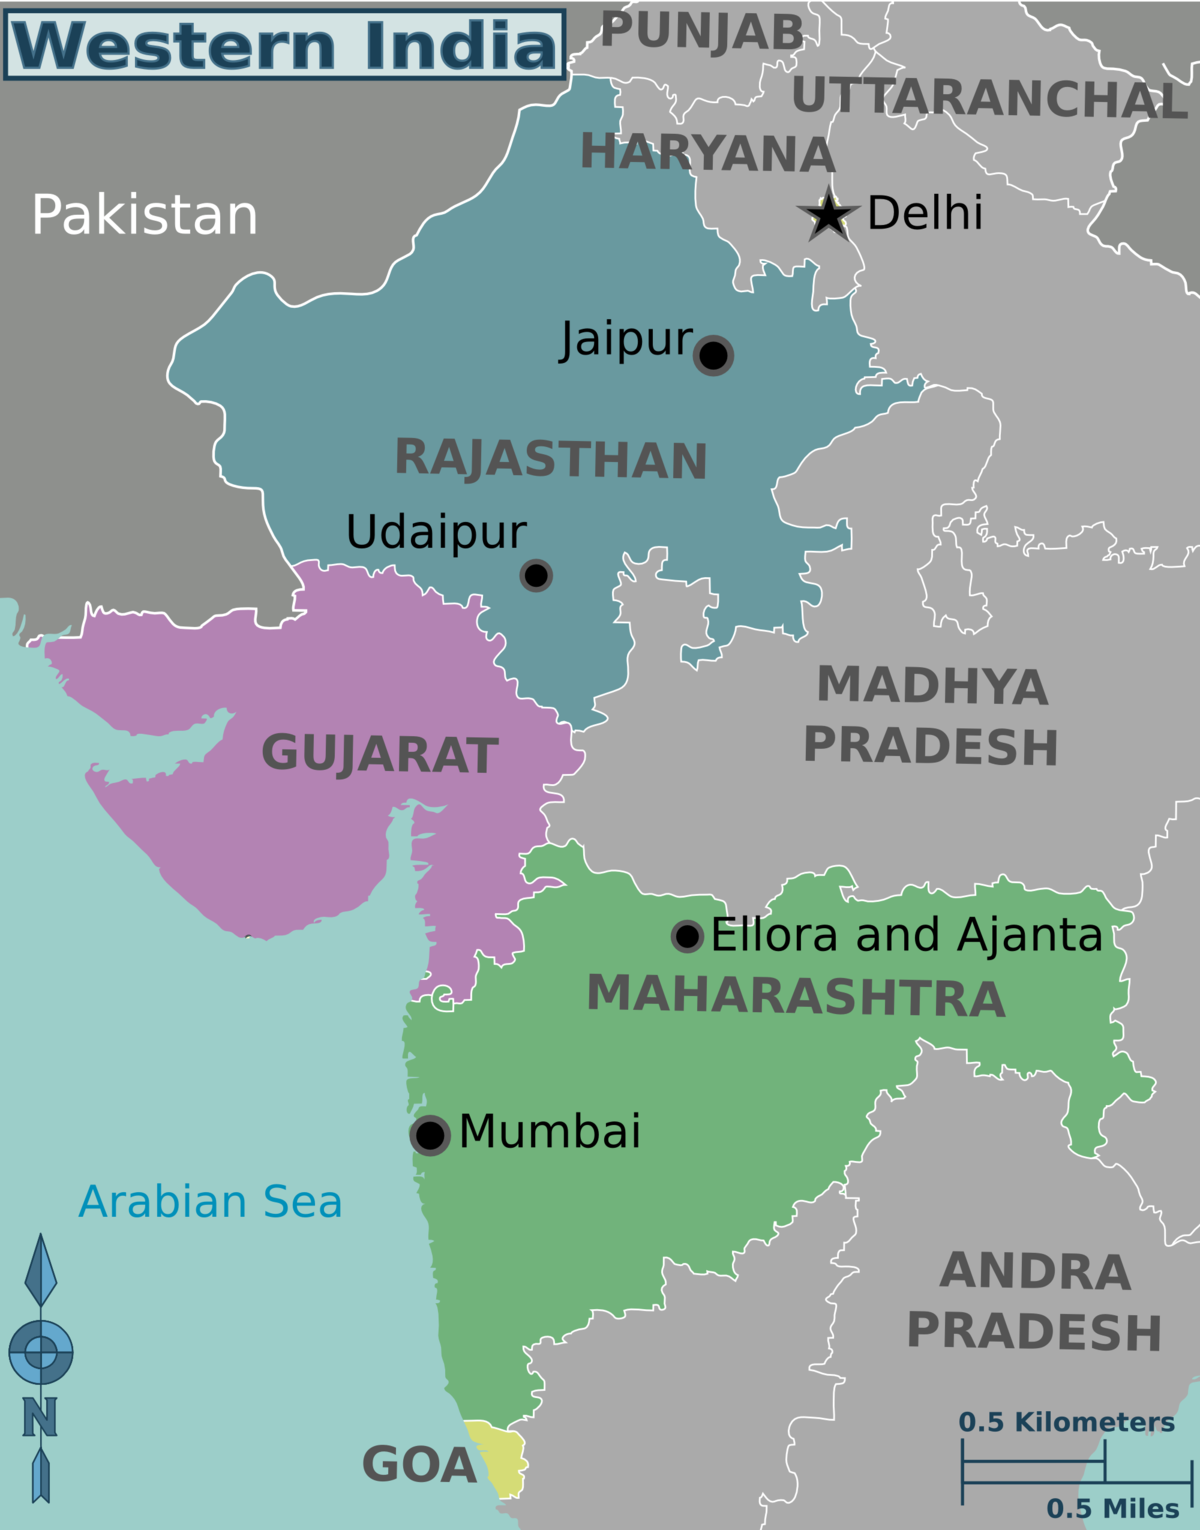 West India Map Western India   Wikipedia